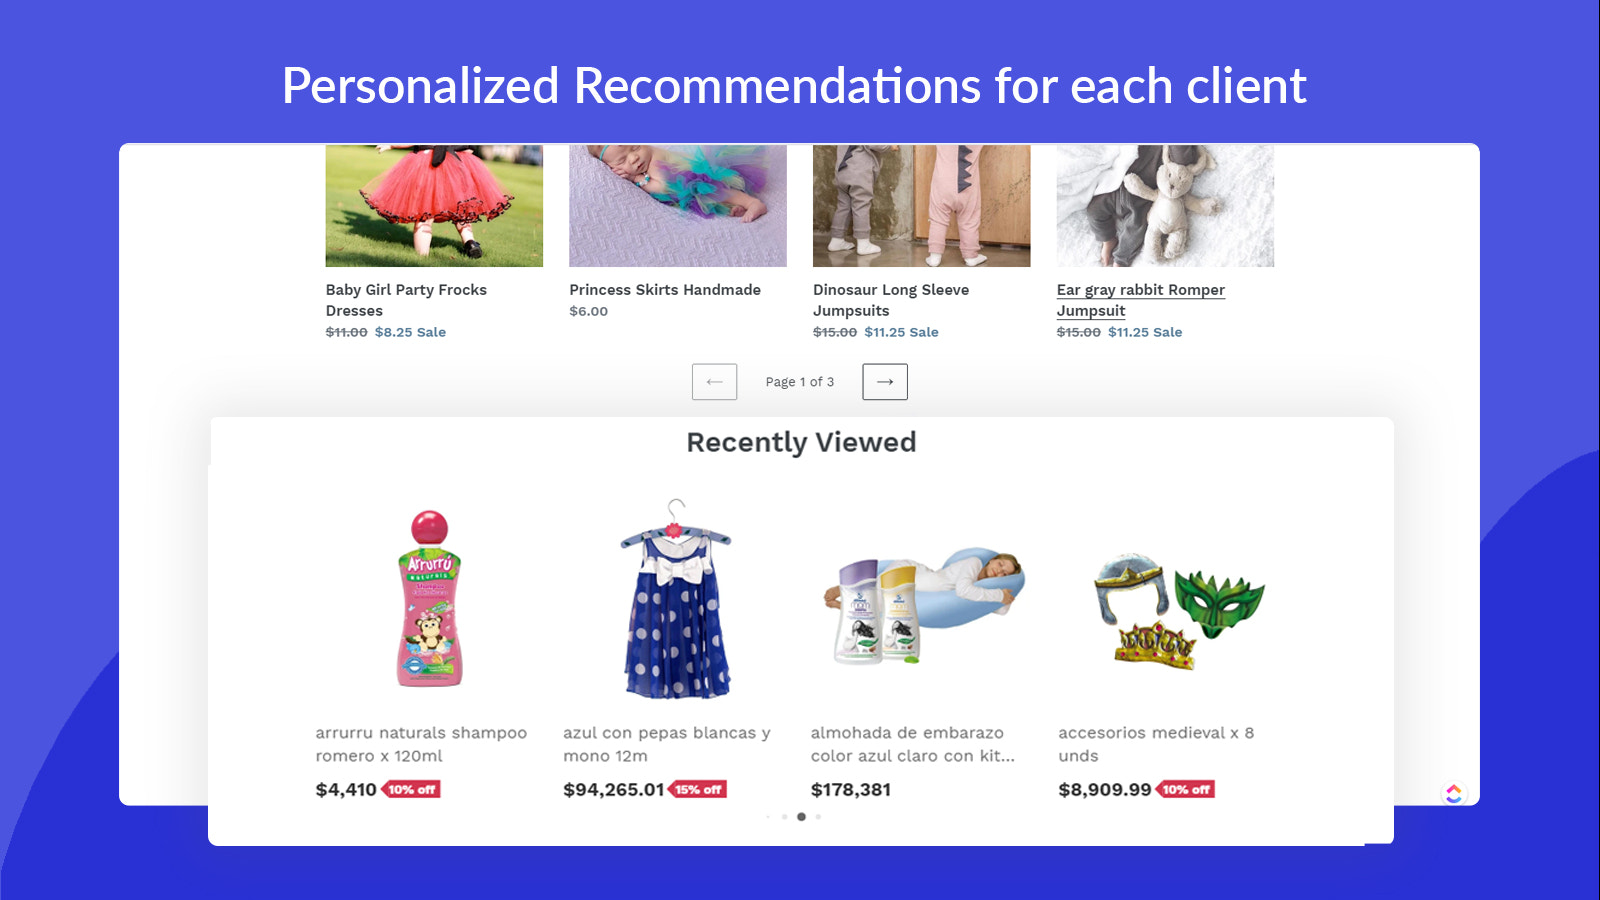 Track how many upsell, cross sell, related product sales you do